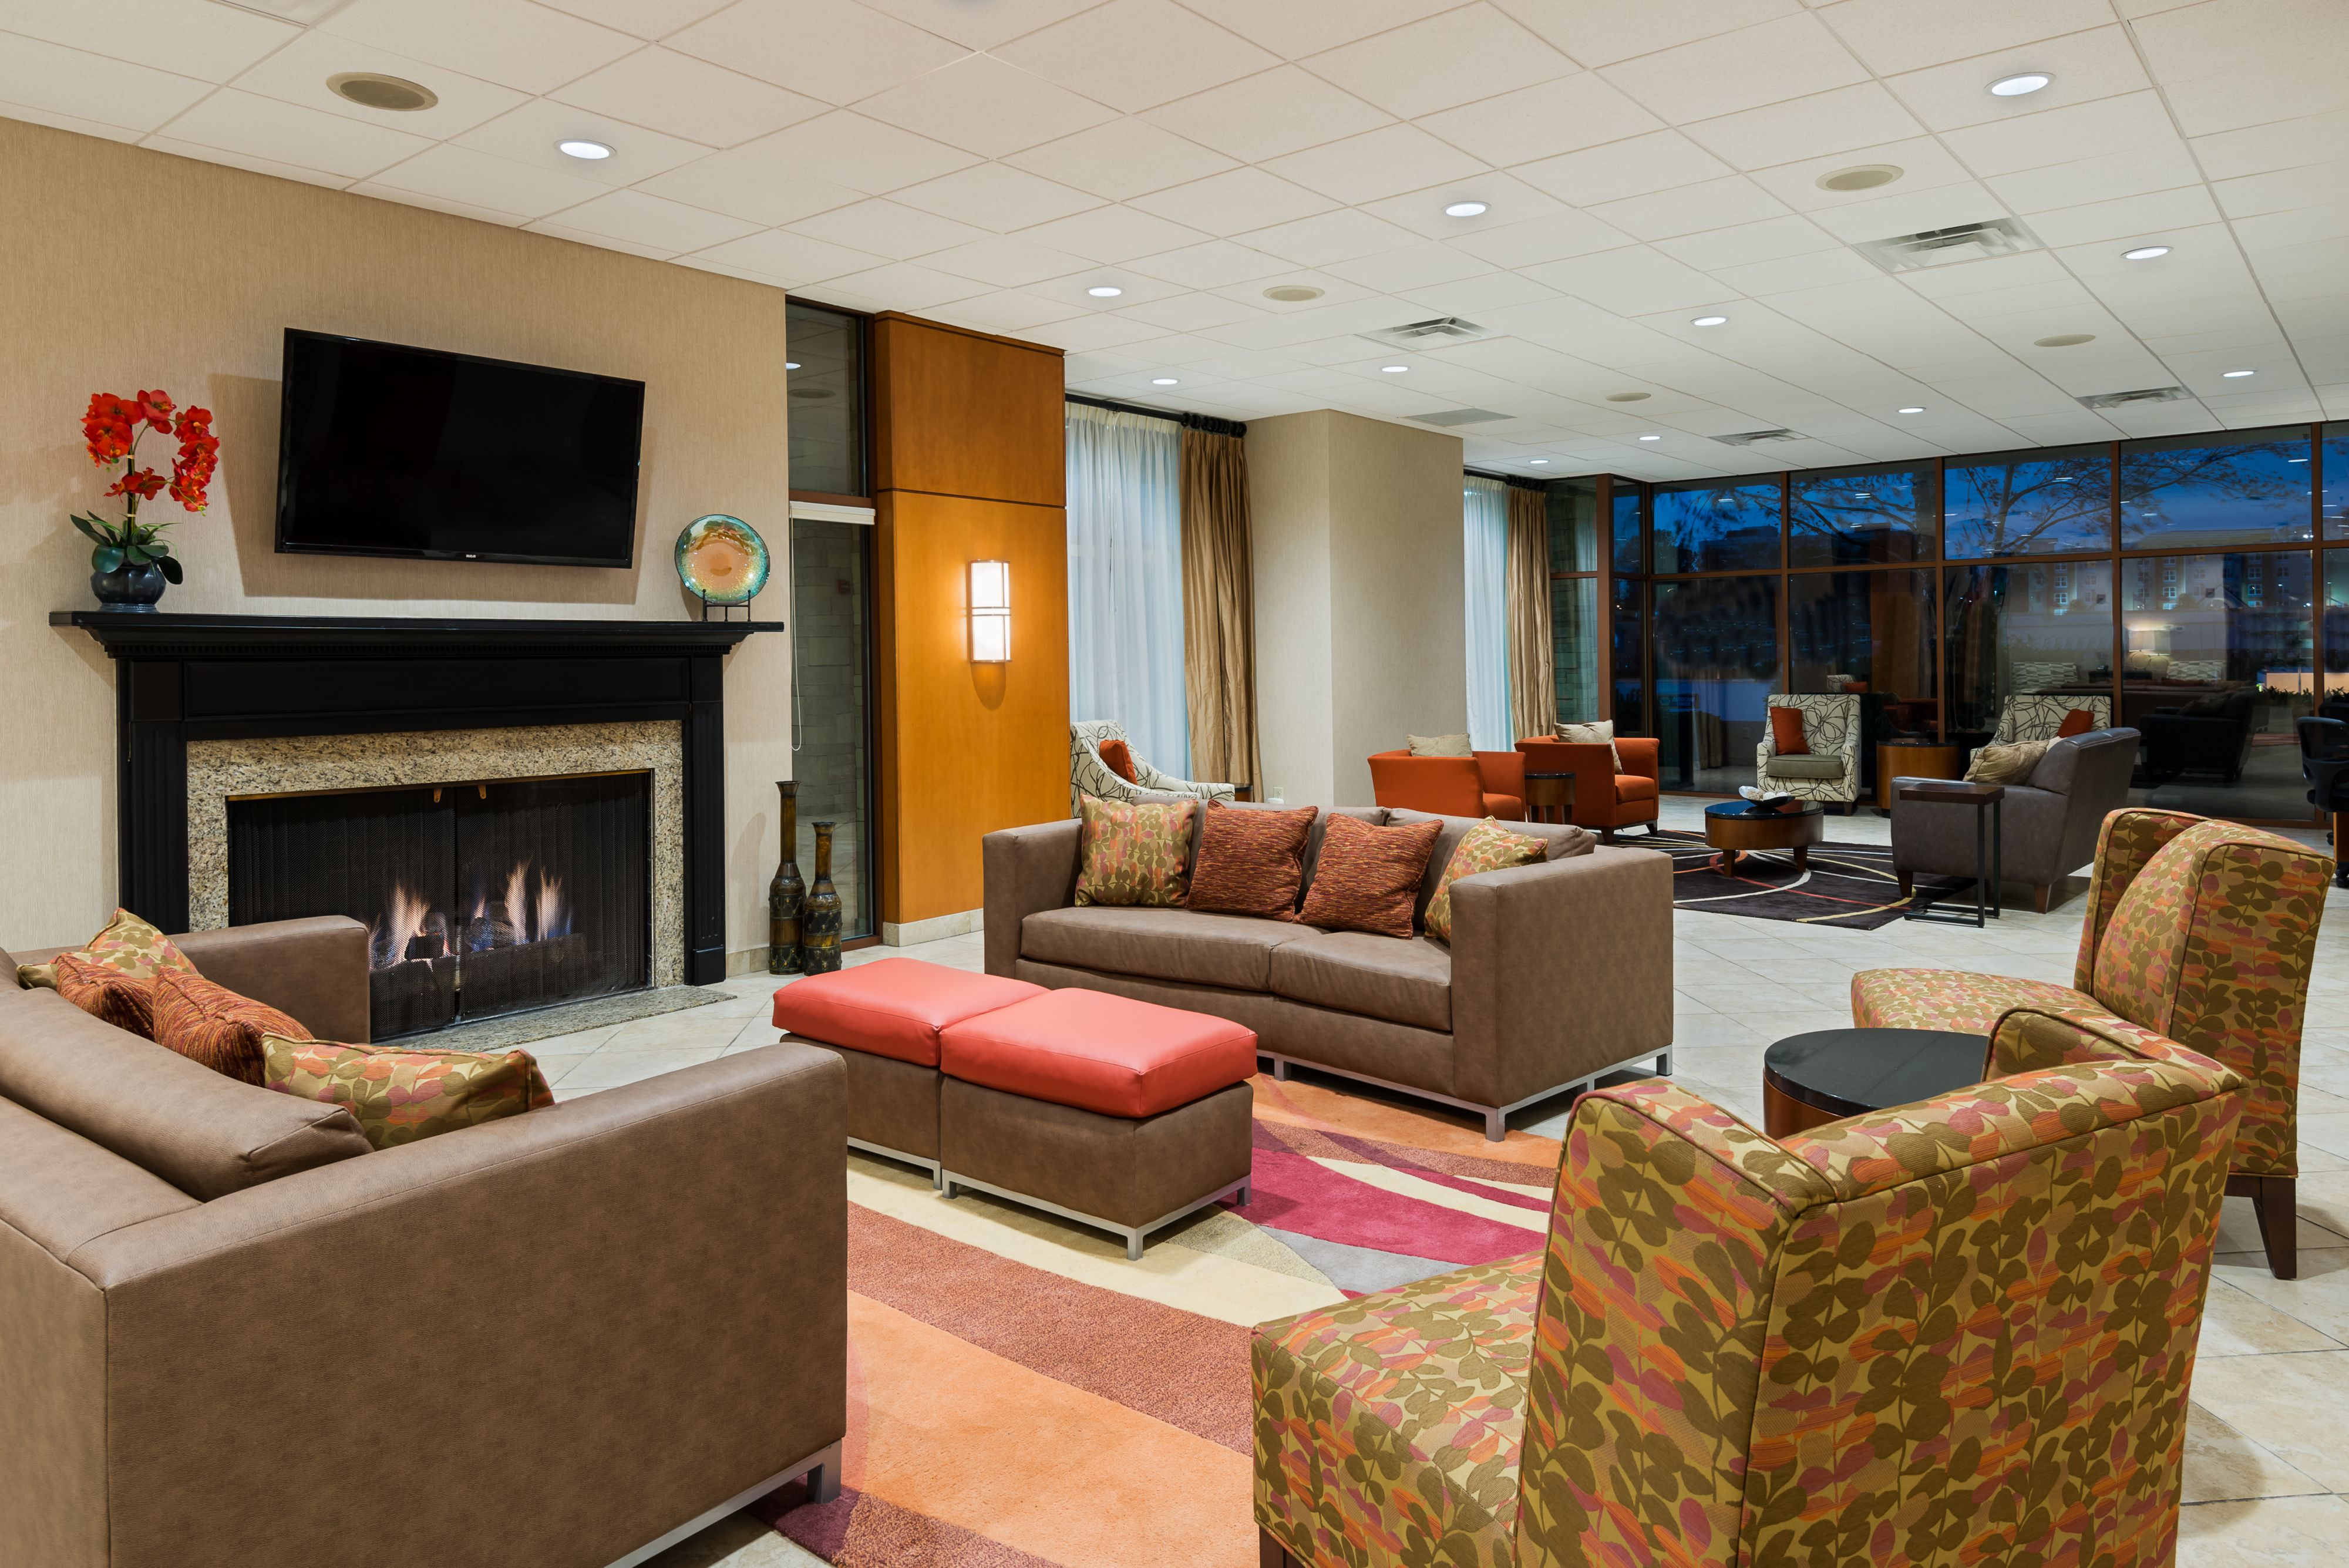 Holiday Inn Knoxville West- Cedar Bluff Rd image 4